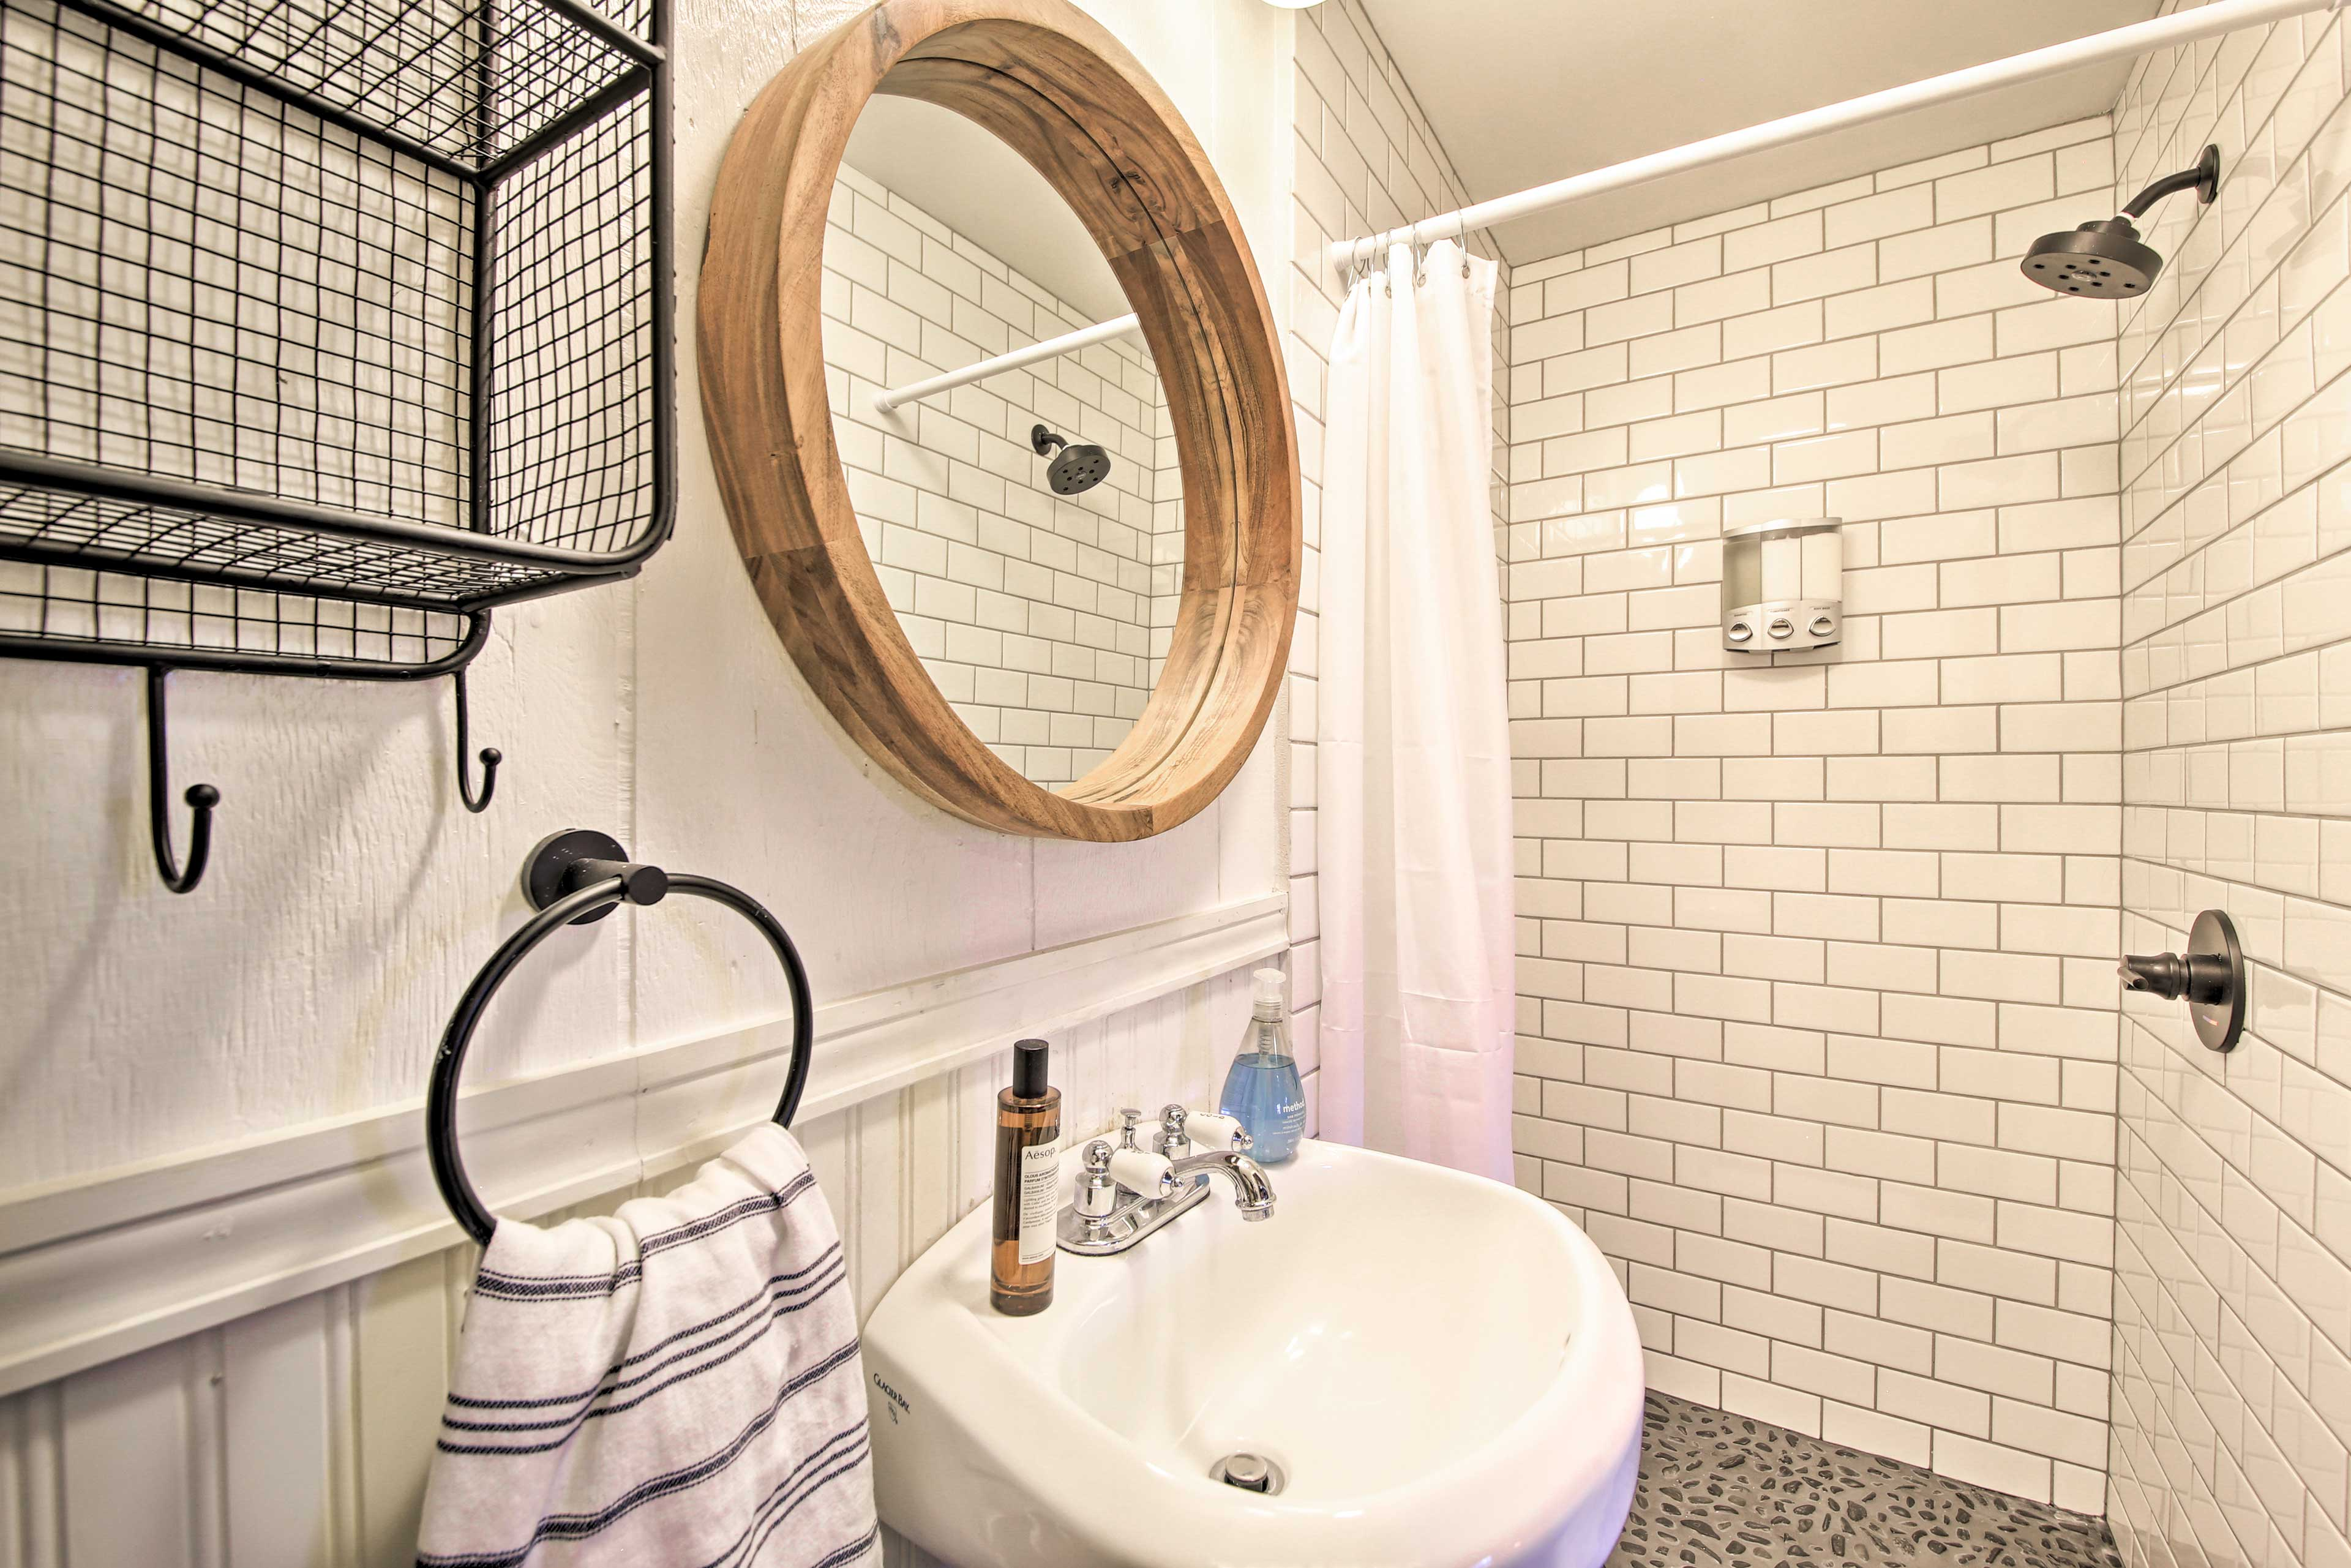 The bathroom downstairs is a full with a walk-in shower.